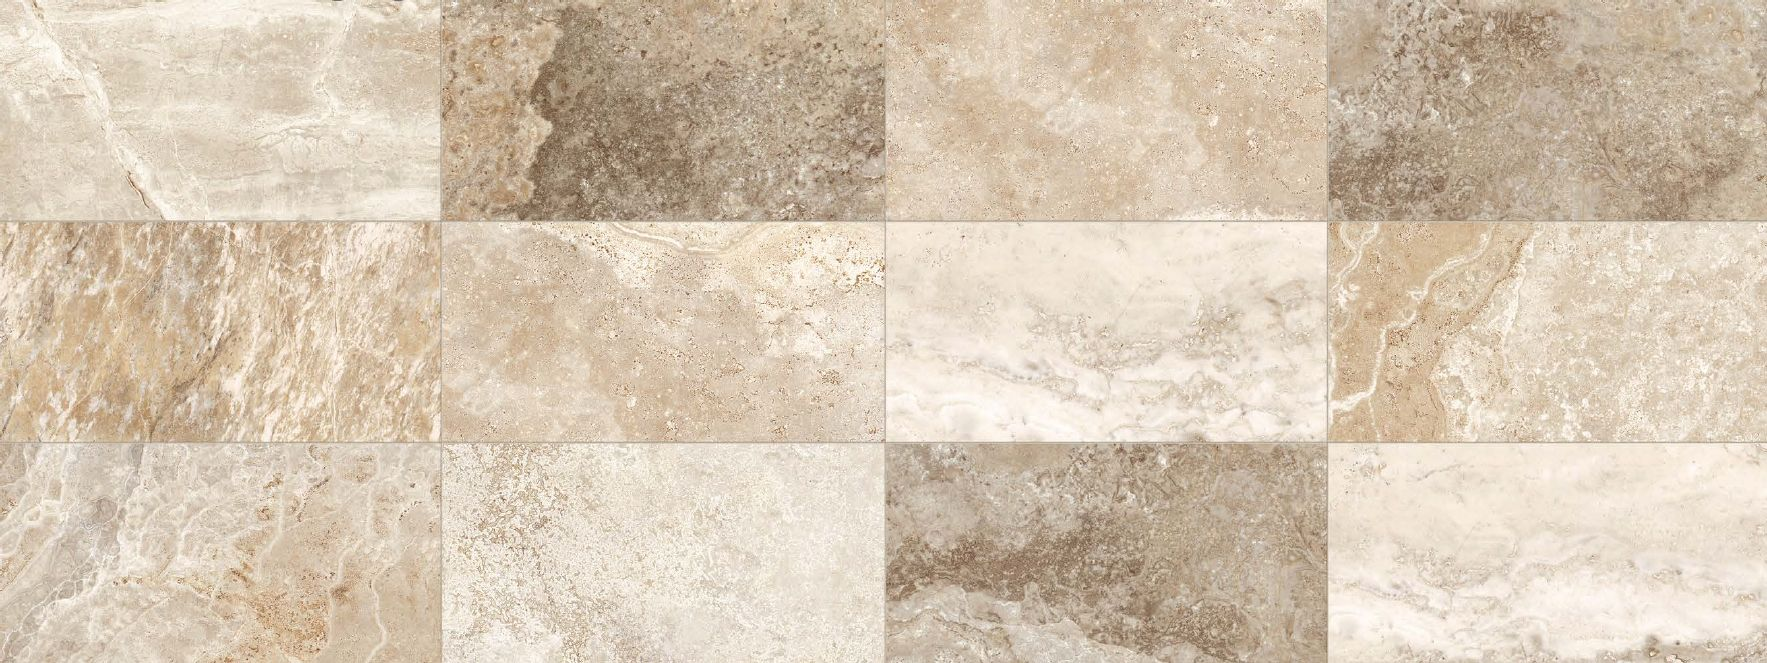 P Travertino Cream Is An Italian Porcelain Tile From The Stone Mix Collection